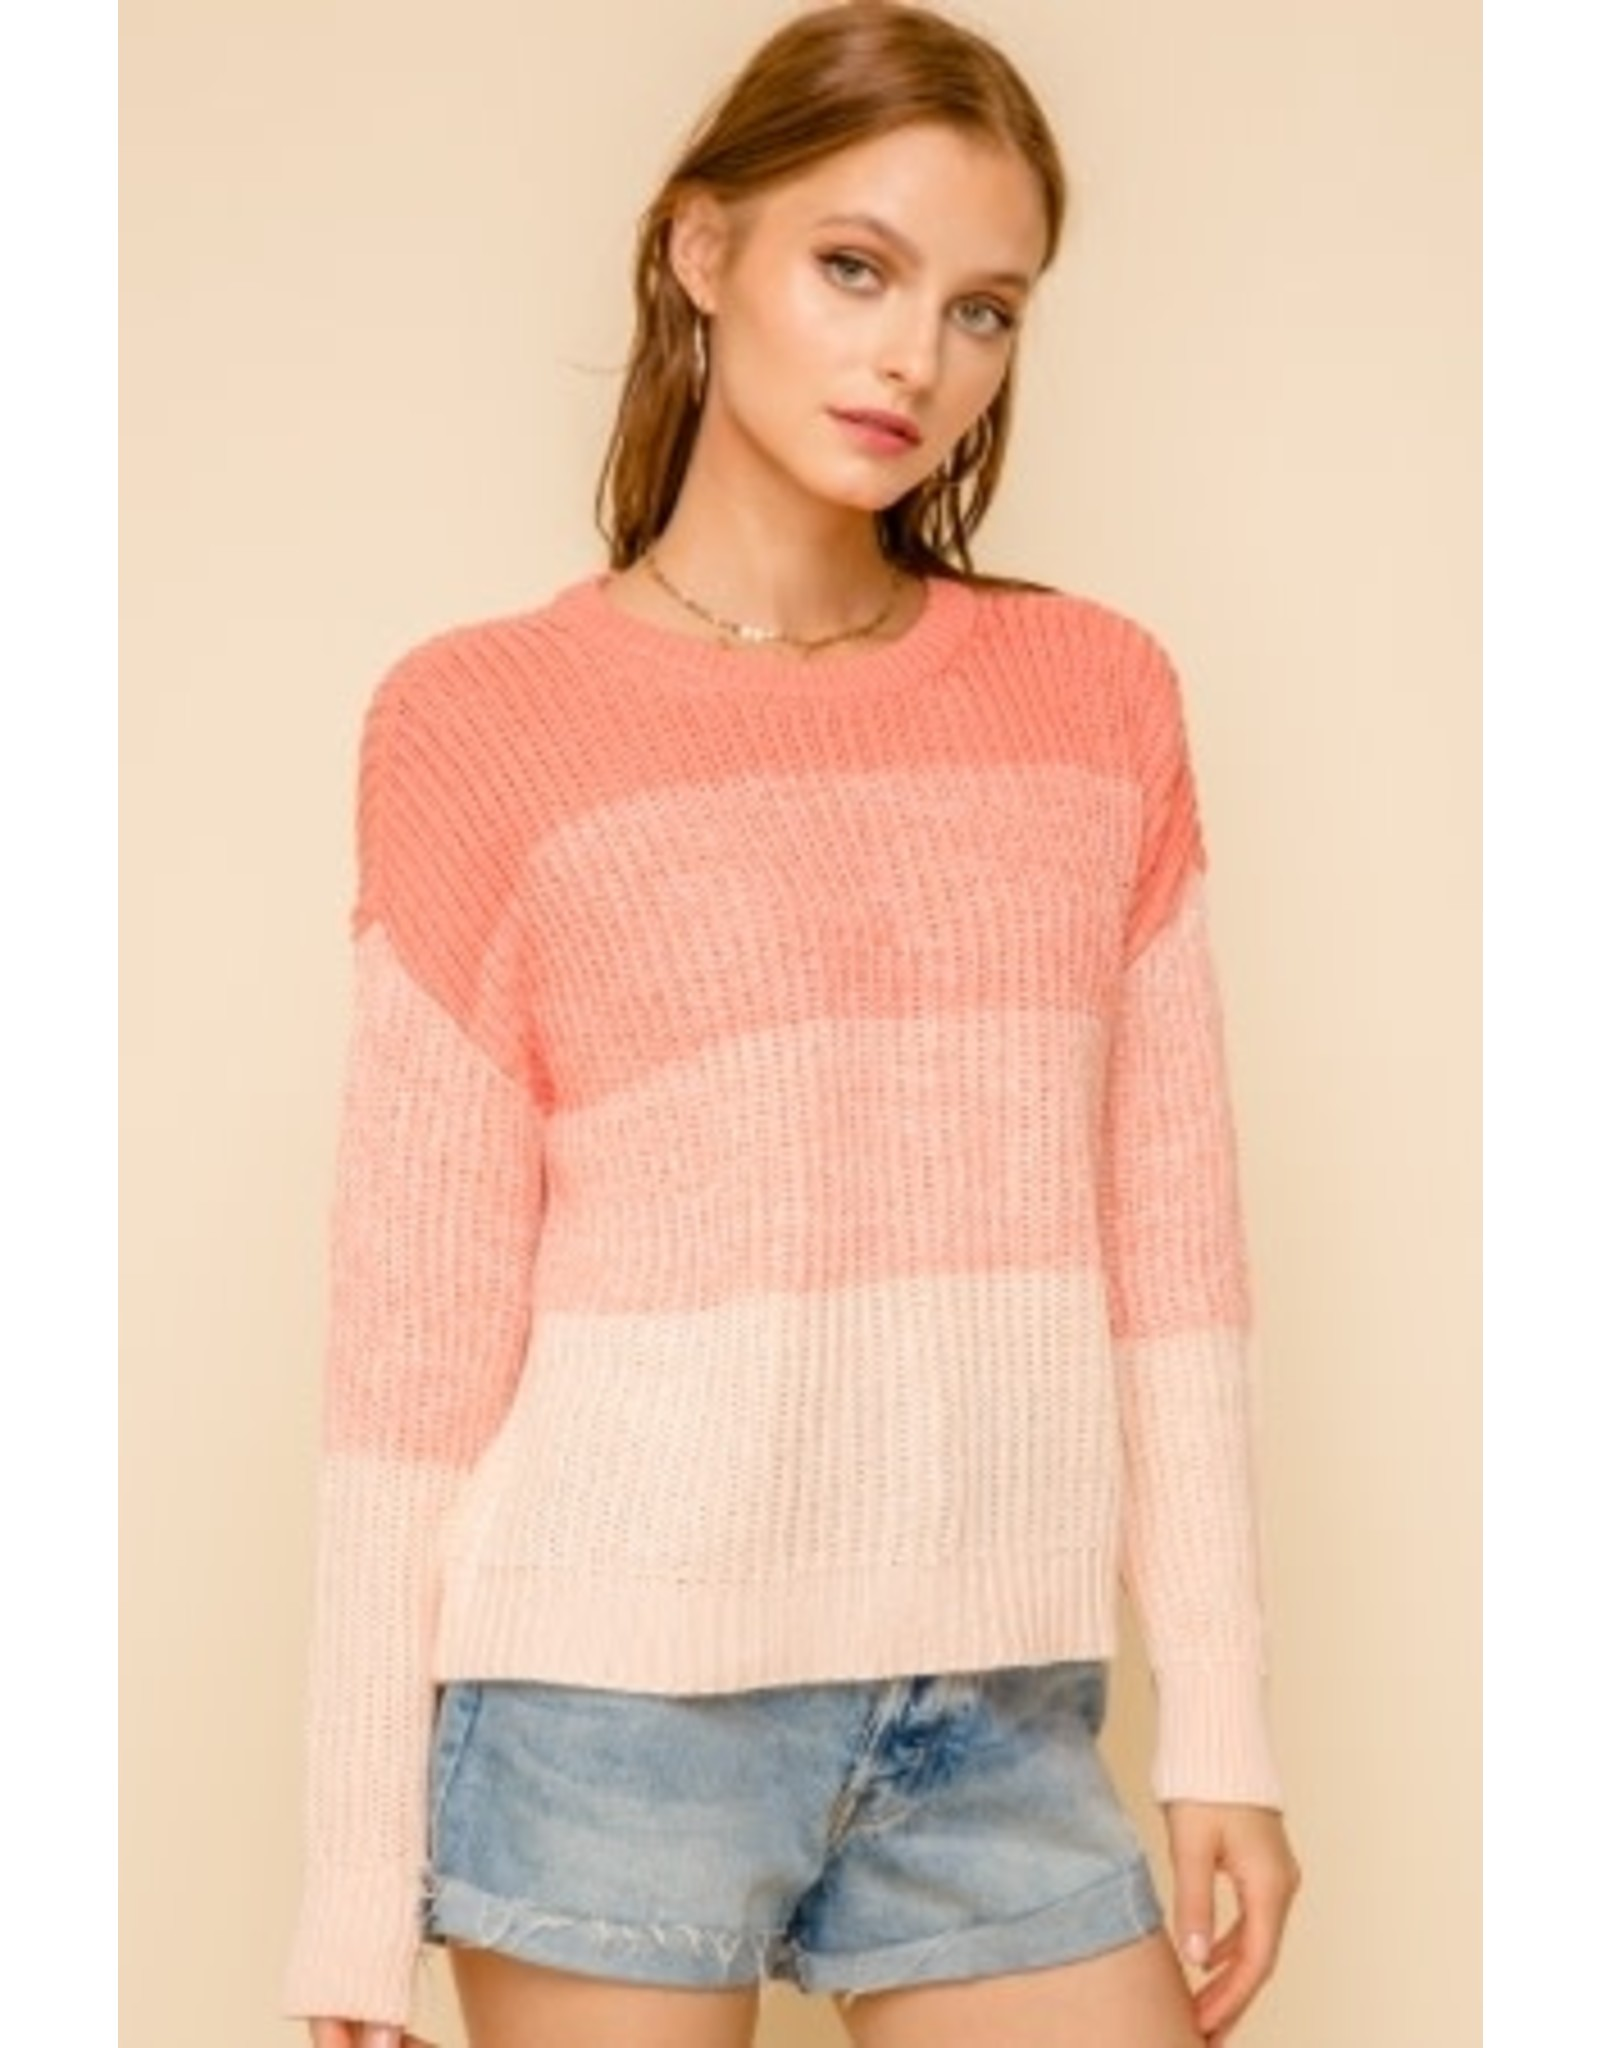 TLC OMBRE SWEATER